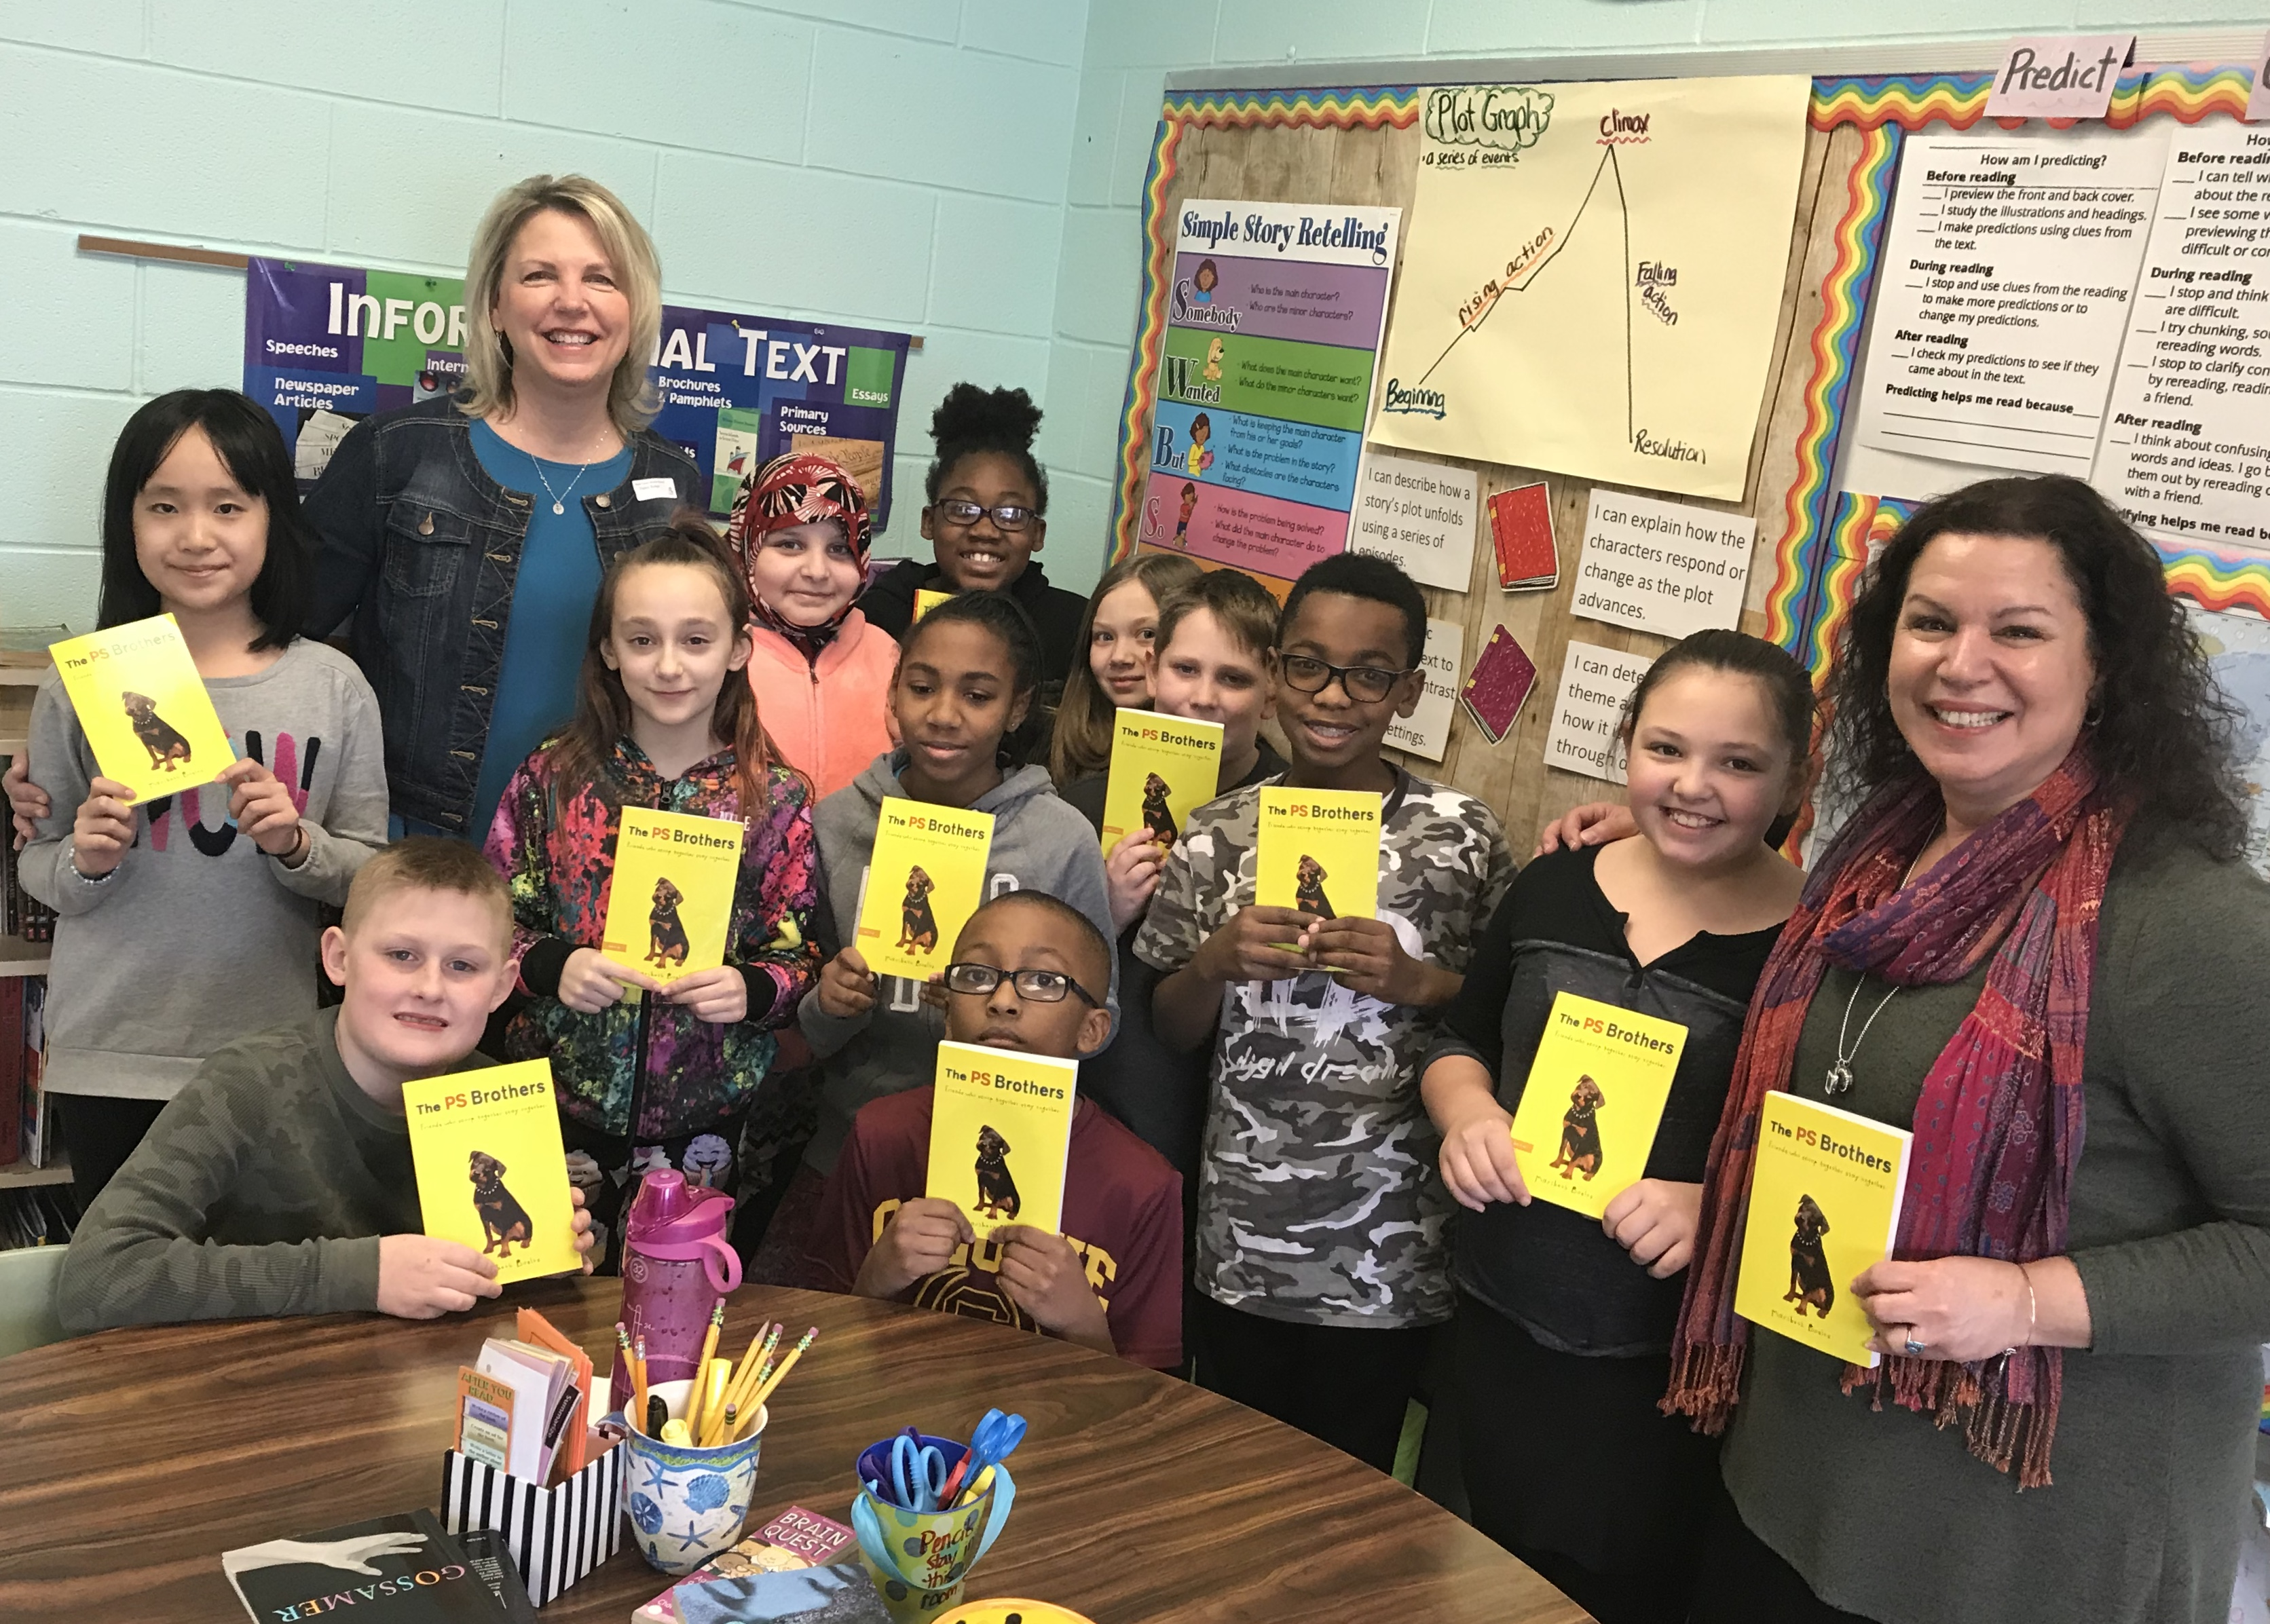 5th graders stand with author showing off her book